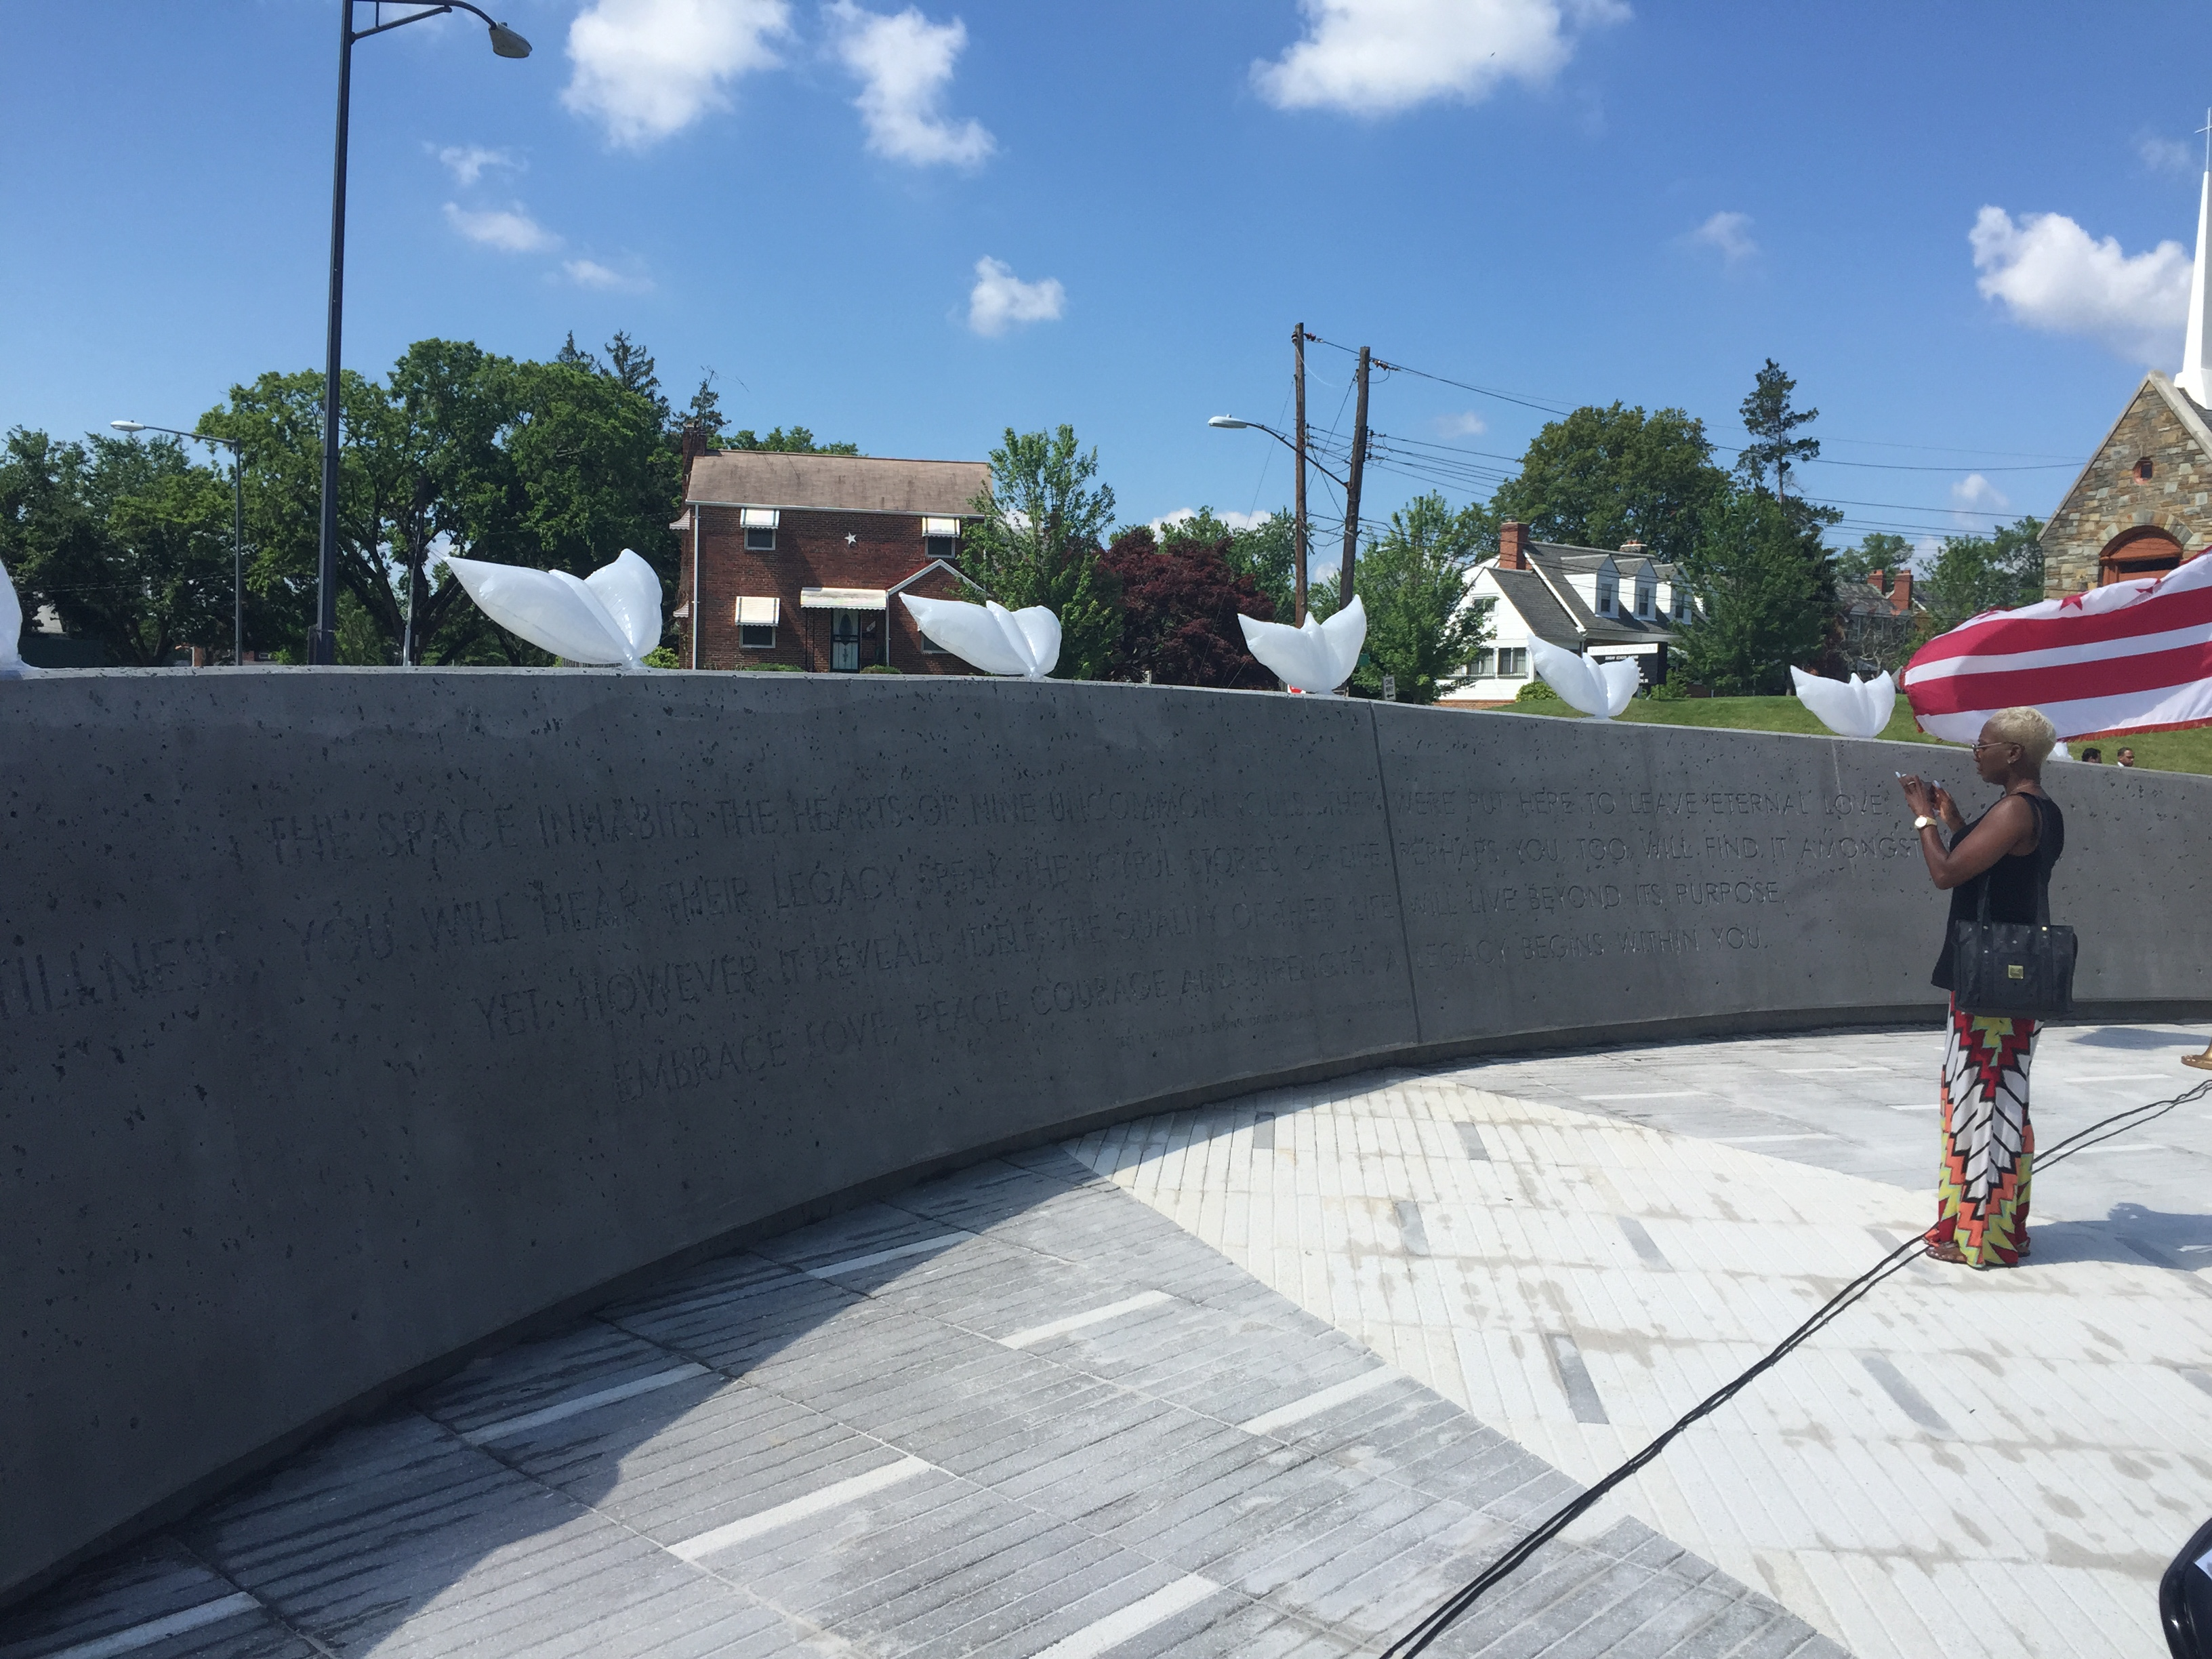 D.C. opens memorial to 9 killed in 2009 Red Line crash